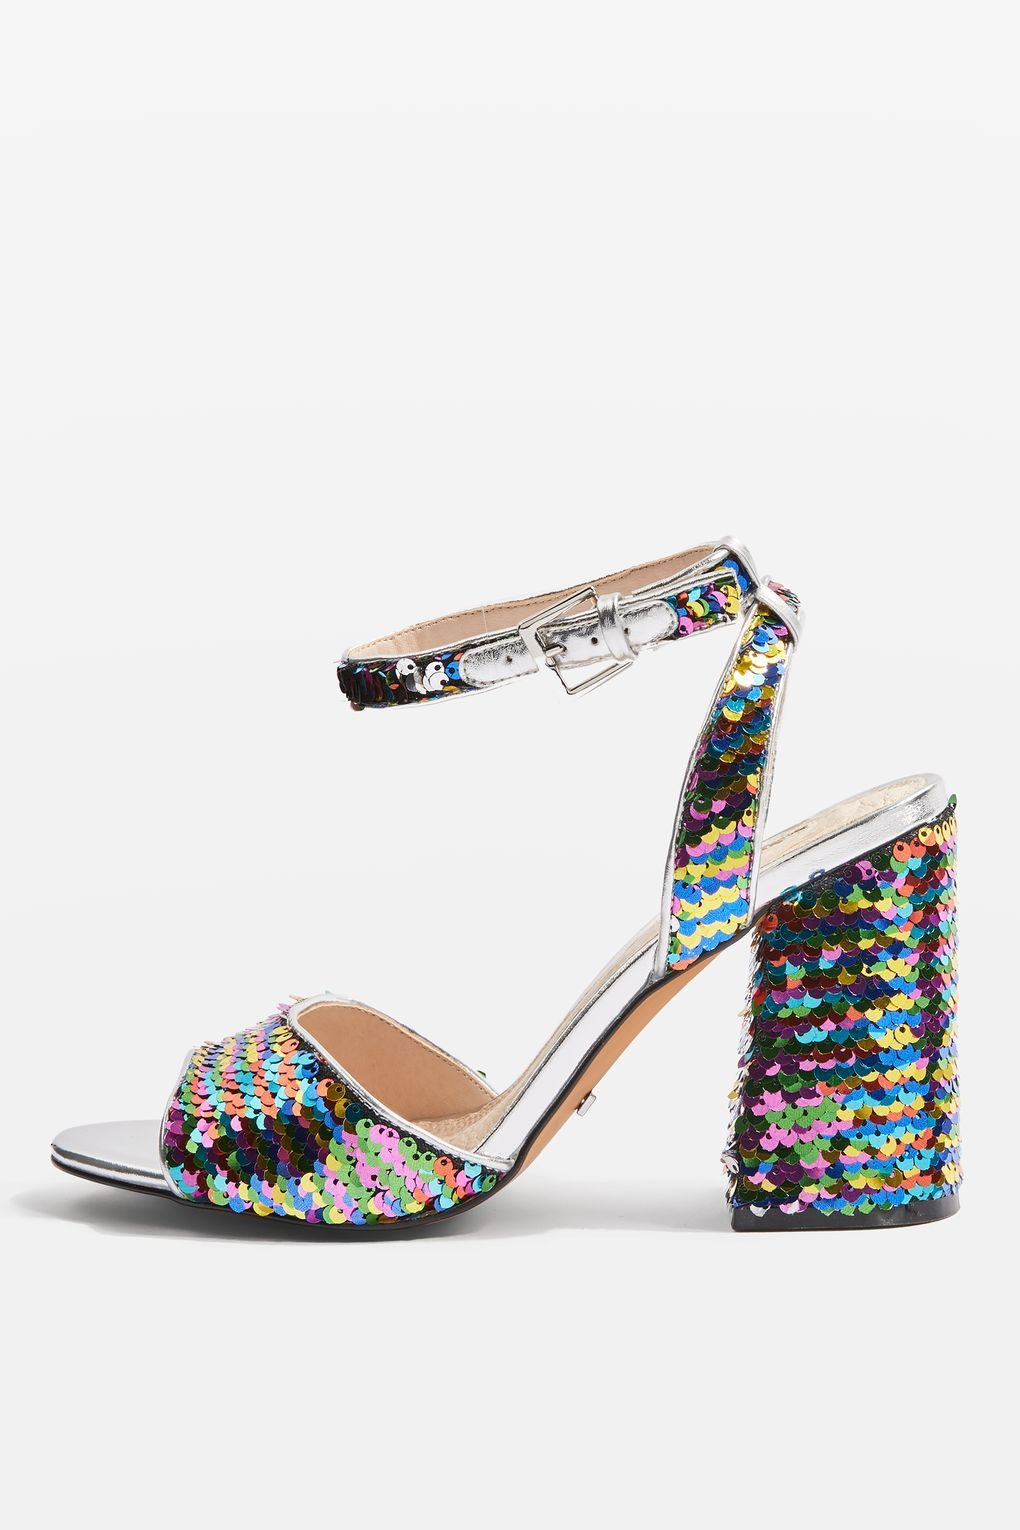 62cfd41f20a Reaction Sequin Embellished Block Heel Sandals - Shoes